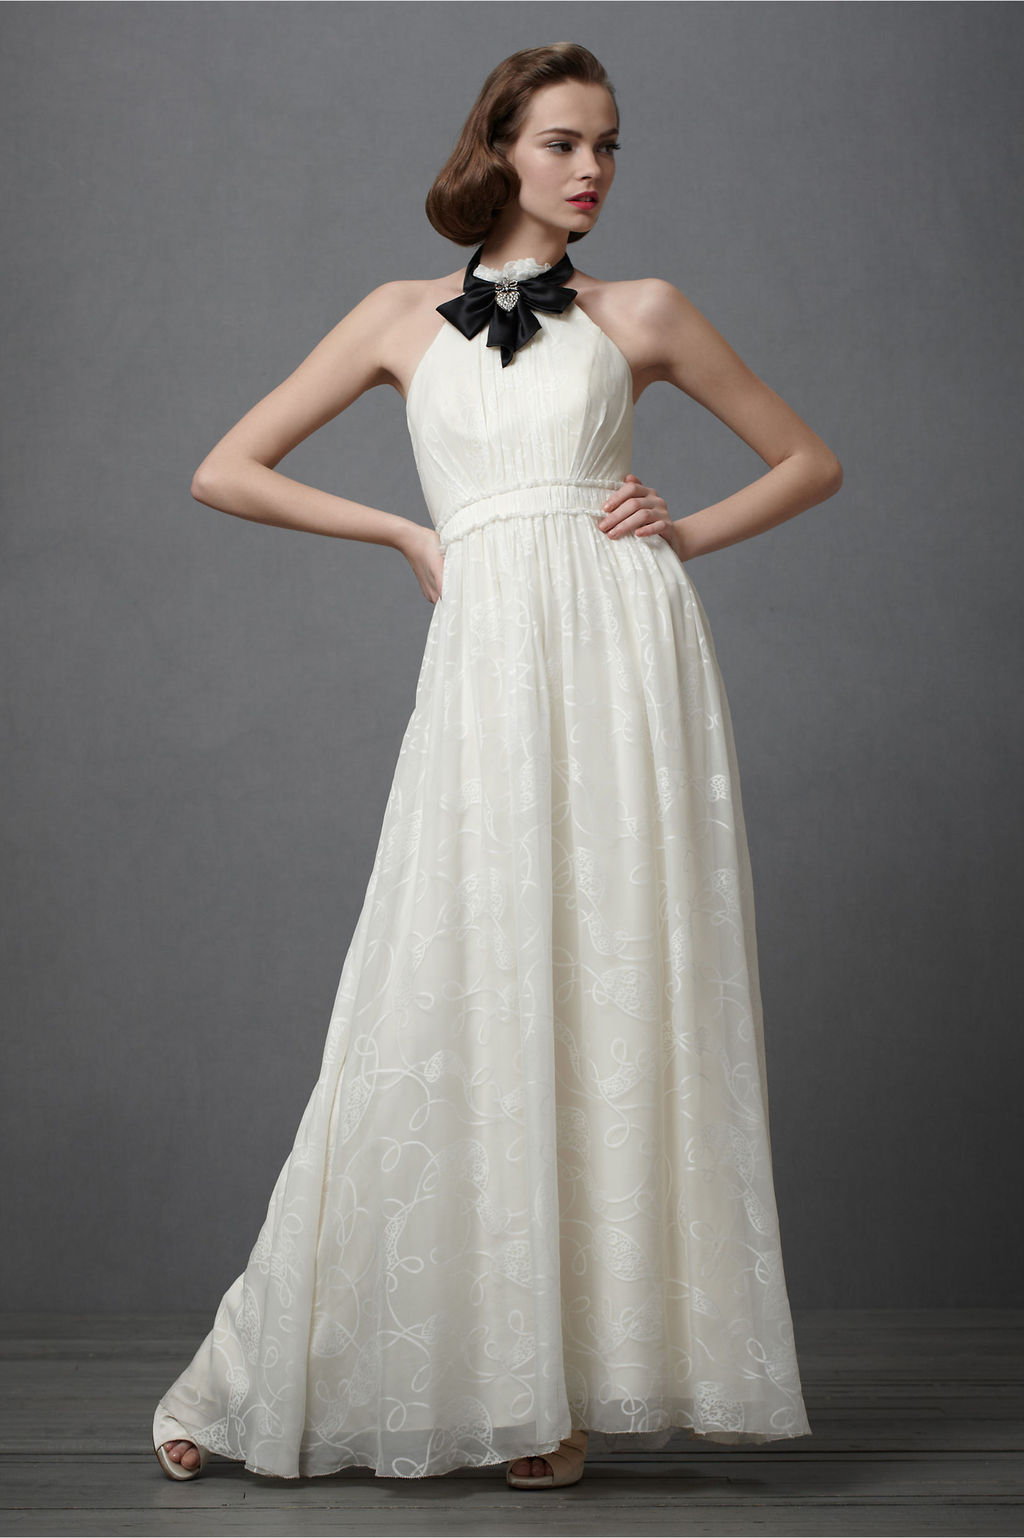 Vintage-inspired-wedding-dress-ivory-silk-black-bridal-jewelry.full